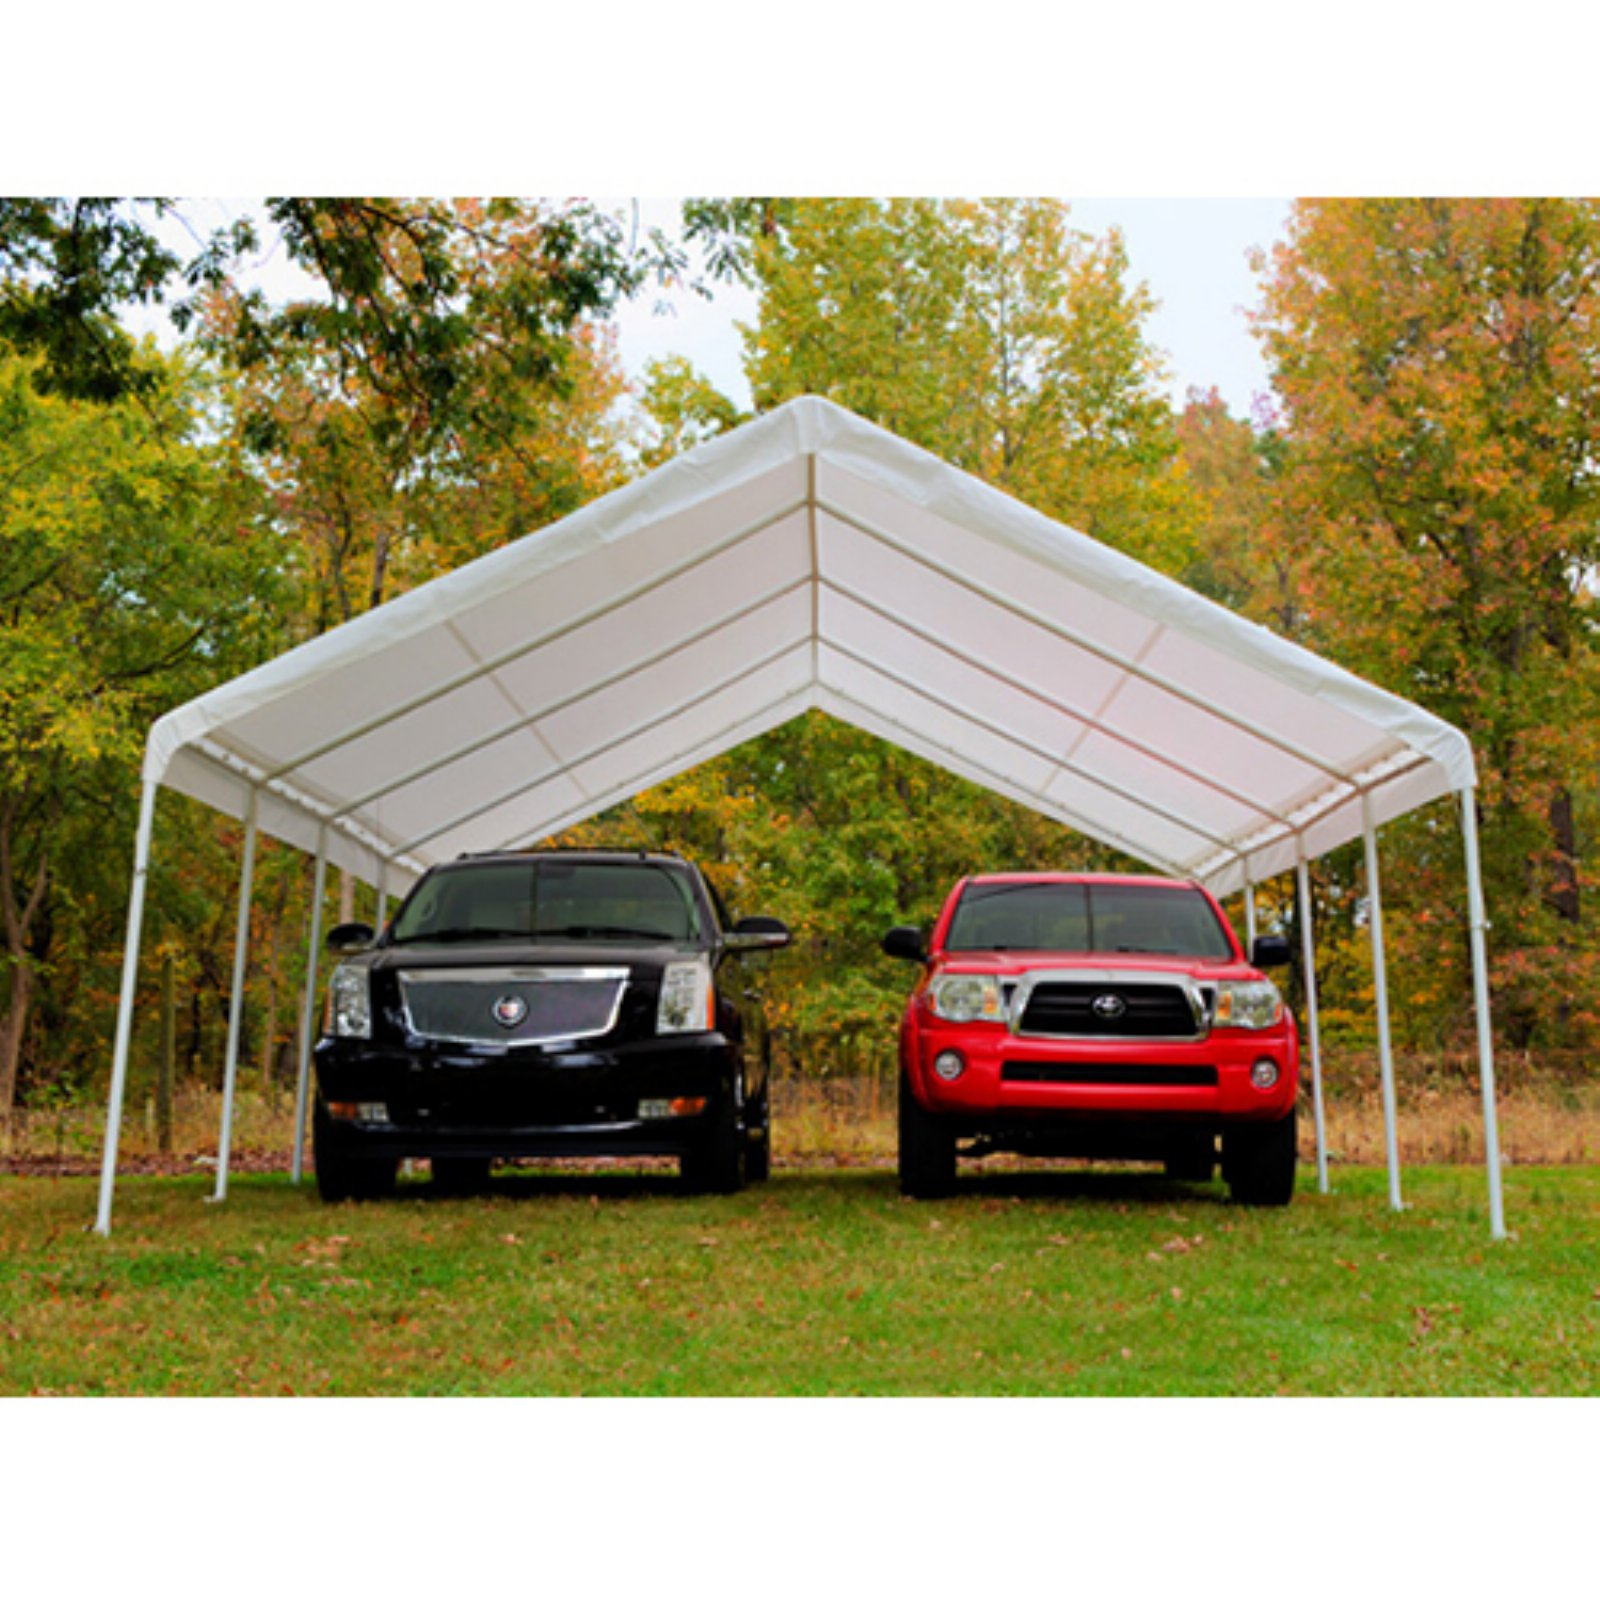 King Canopy 18 x 27 ft. Canopy Replacement Drawstring Carport Cover